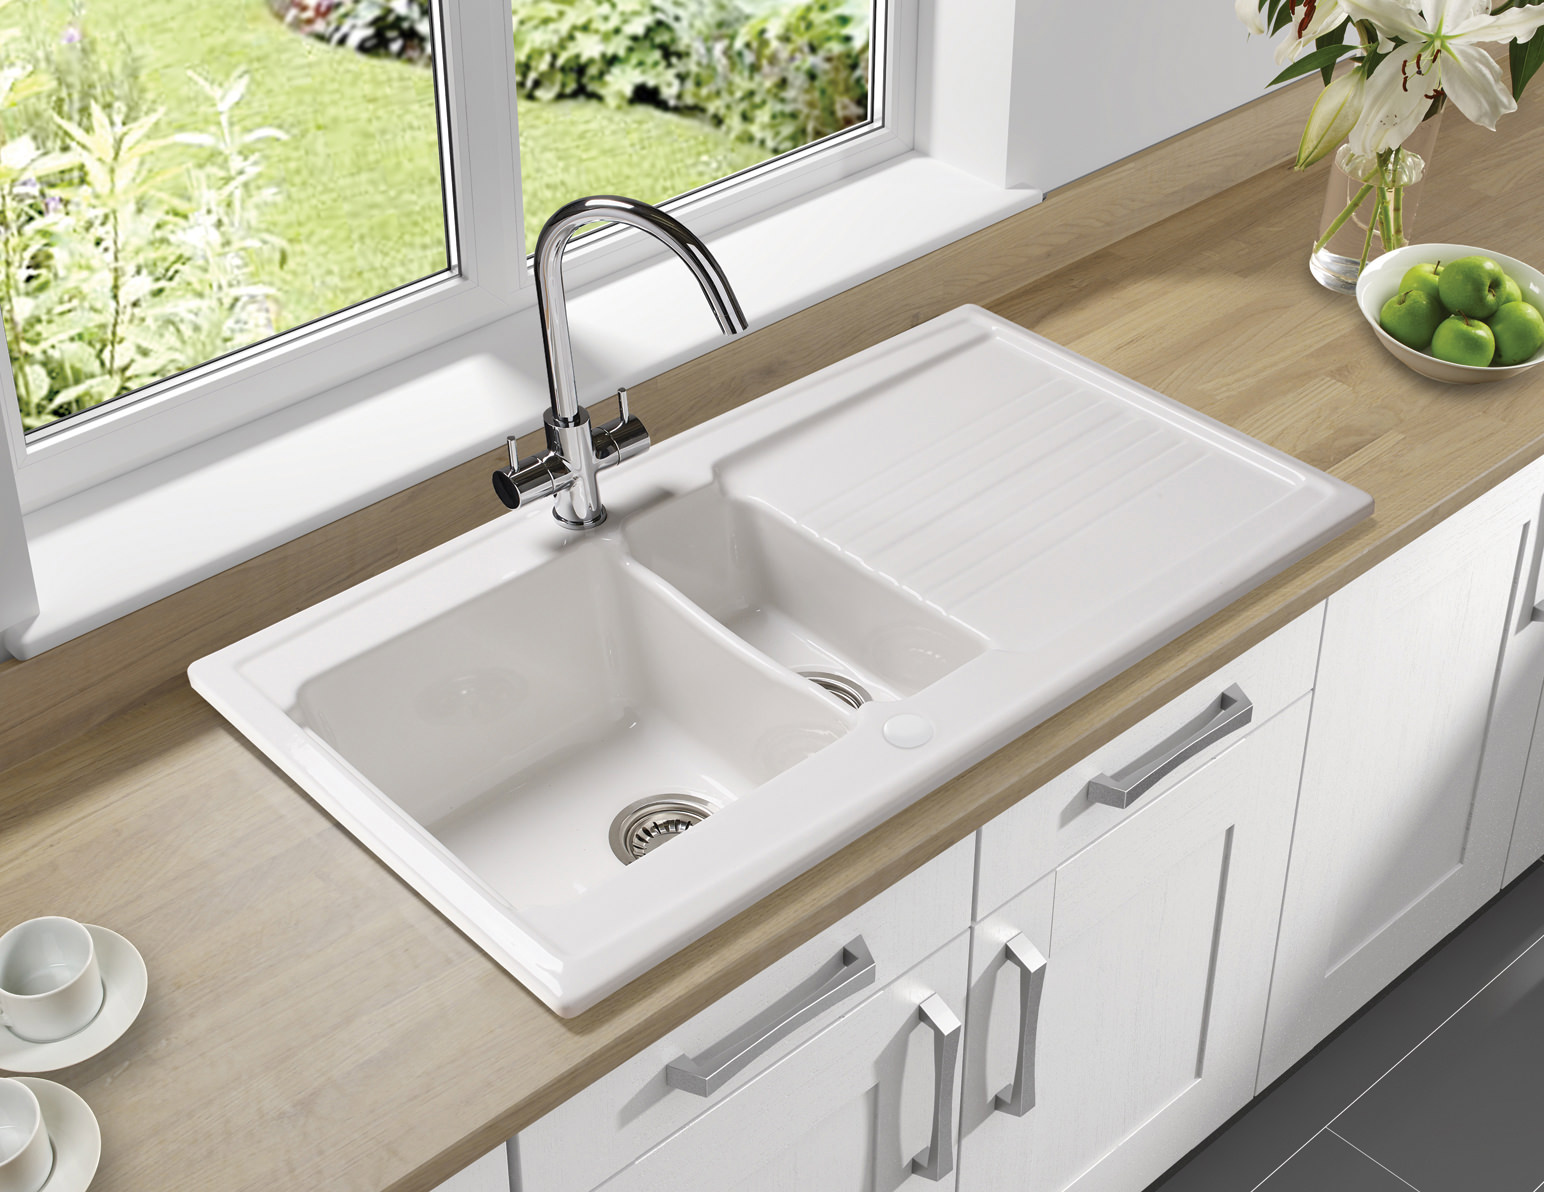 Large White Porcelain Kitchen Sink